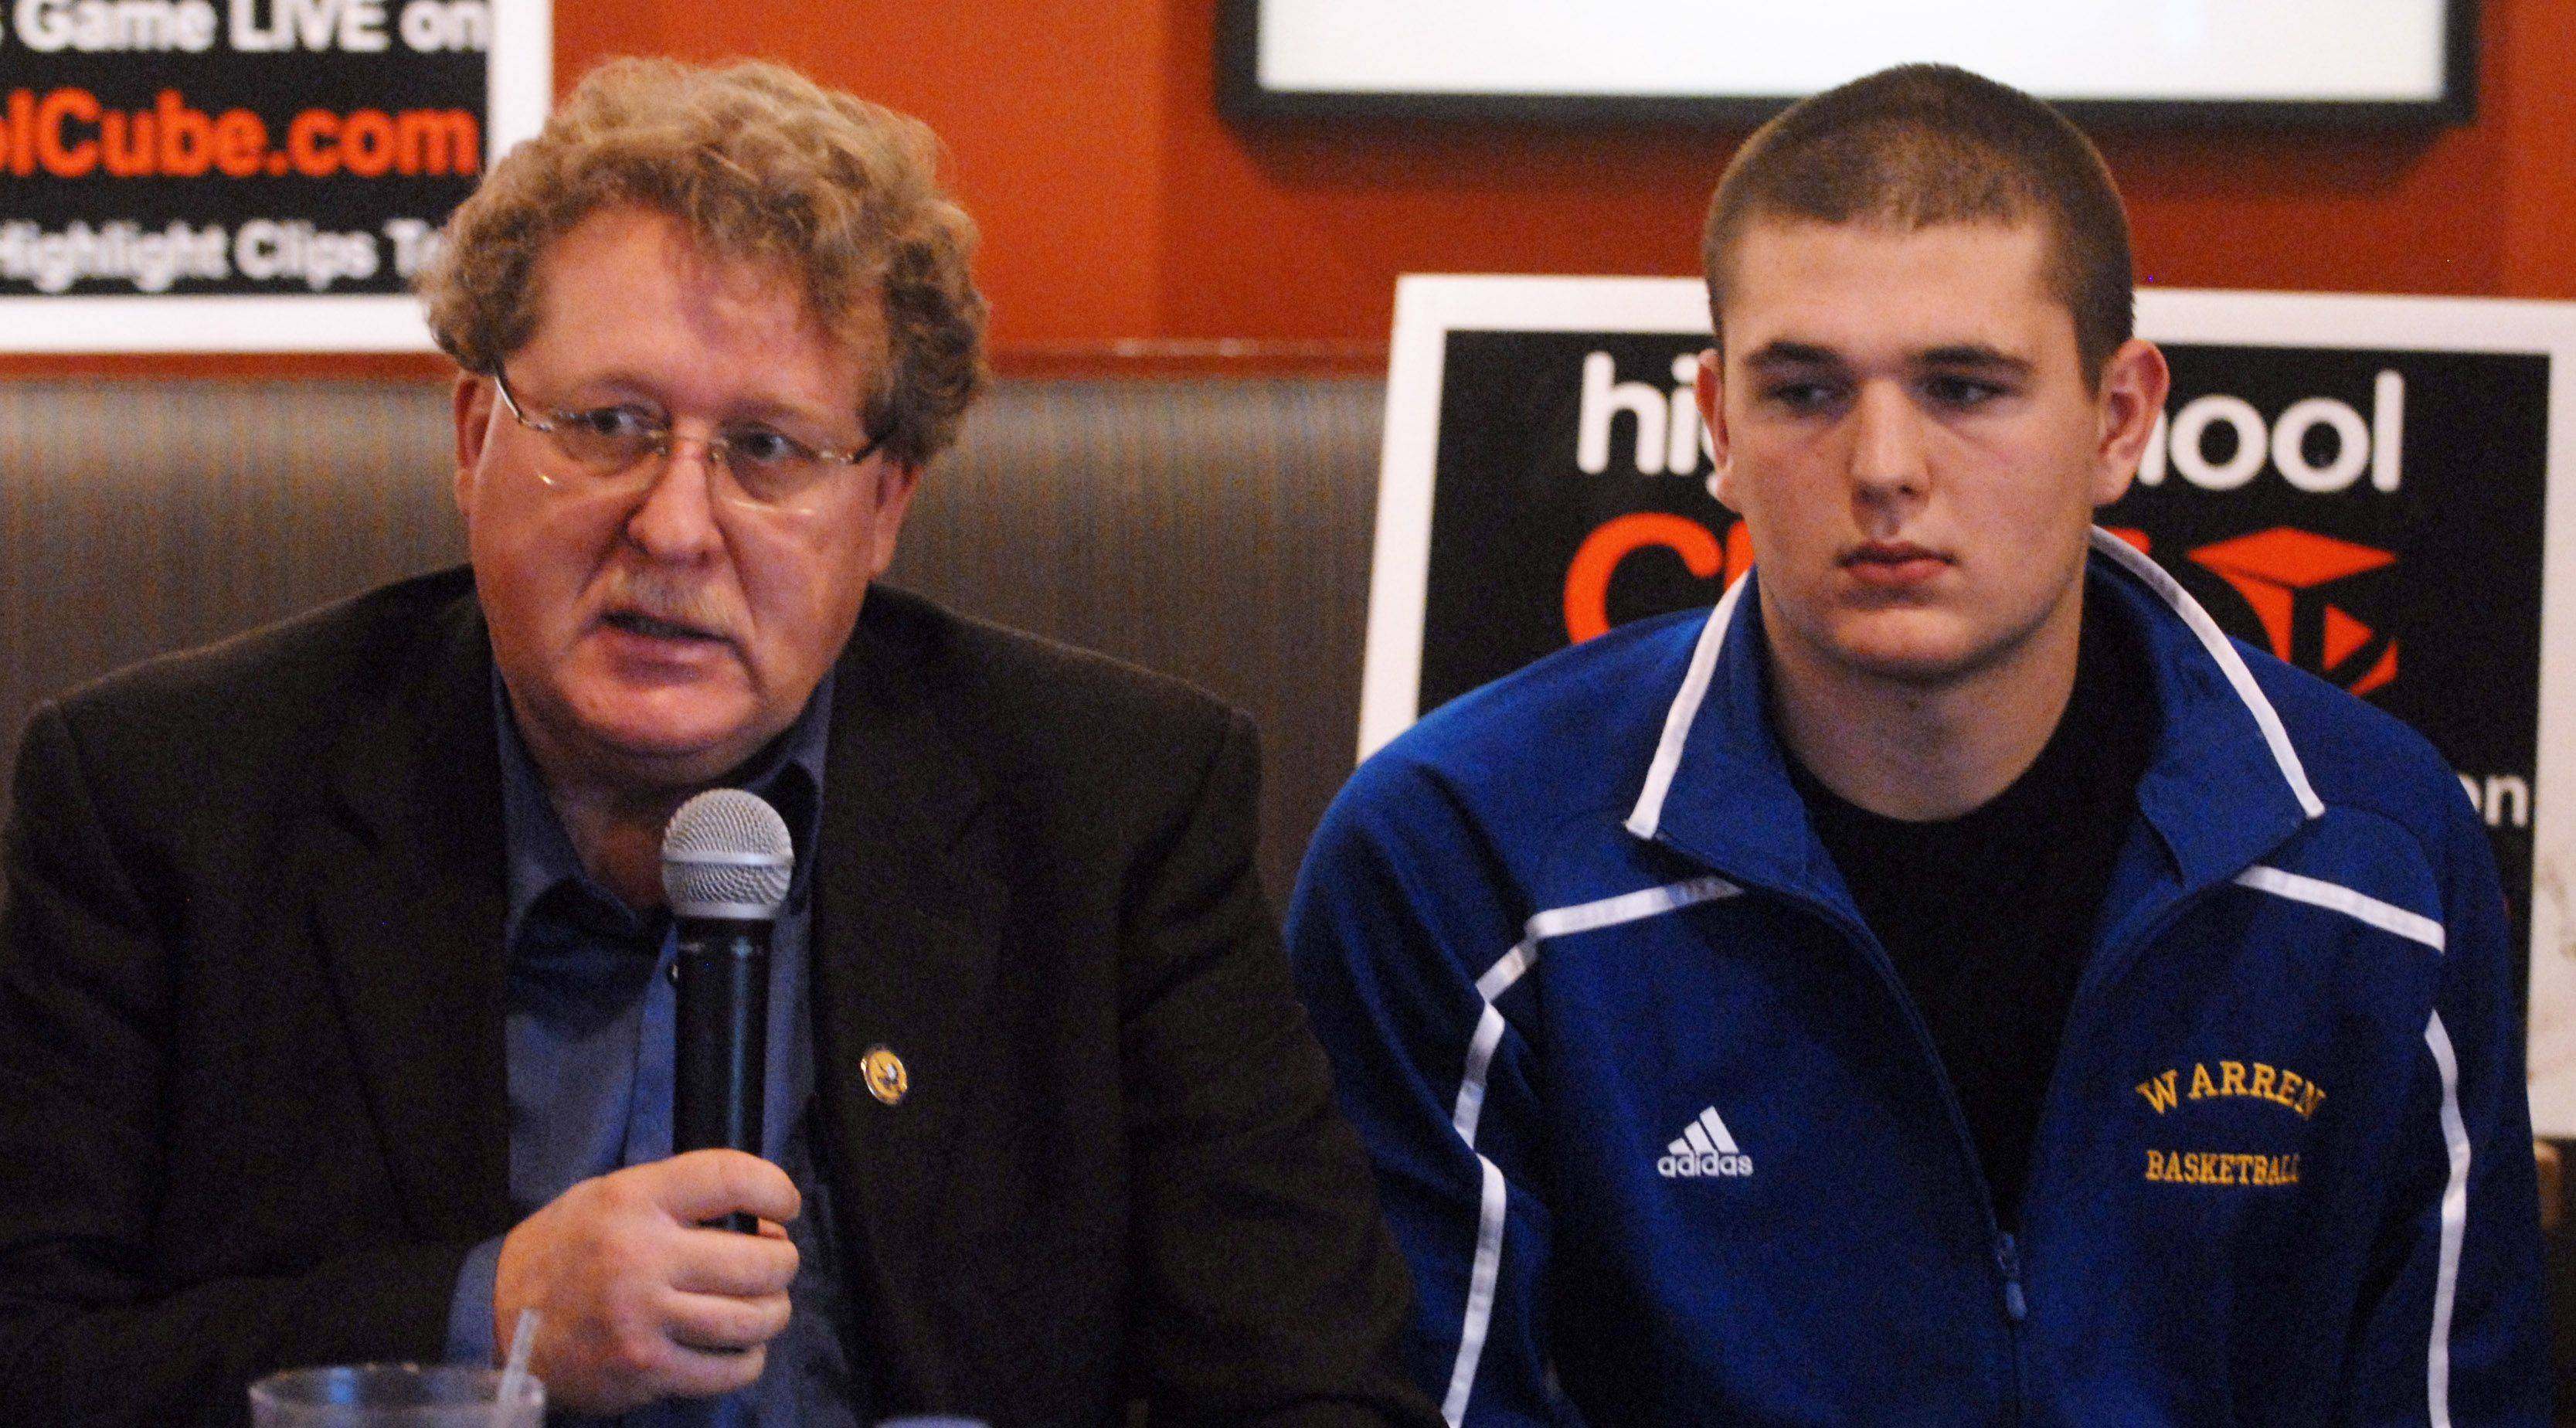 Warren boys basketball coach Chuck Ramsey, seated with the Blue Devils' Nathan Boothe, speaks during a Hoops Showdown press conference at Lou Malnati's in Schaumburg Tuesday.